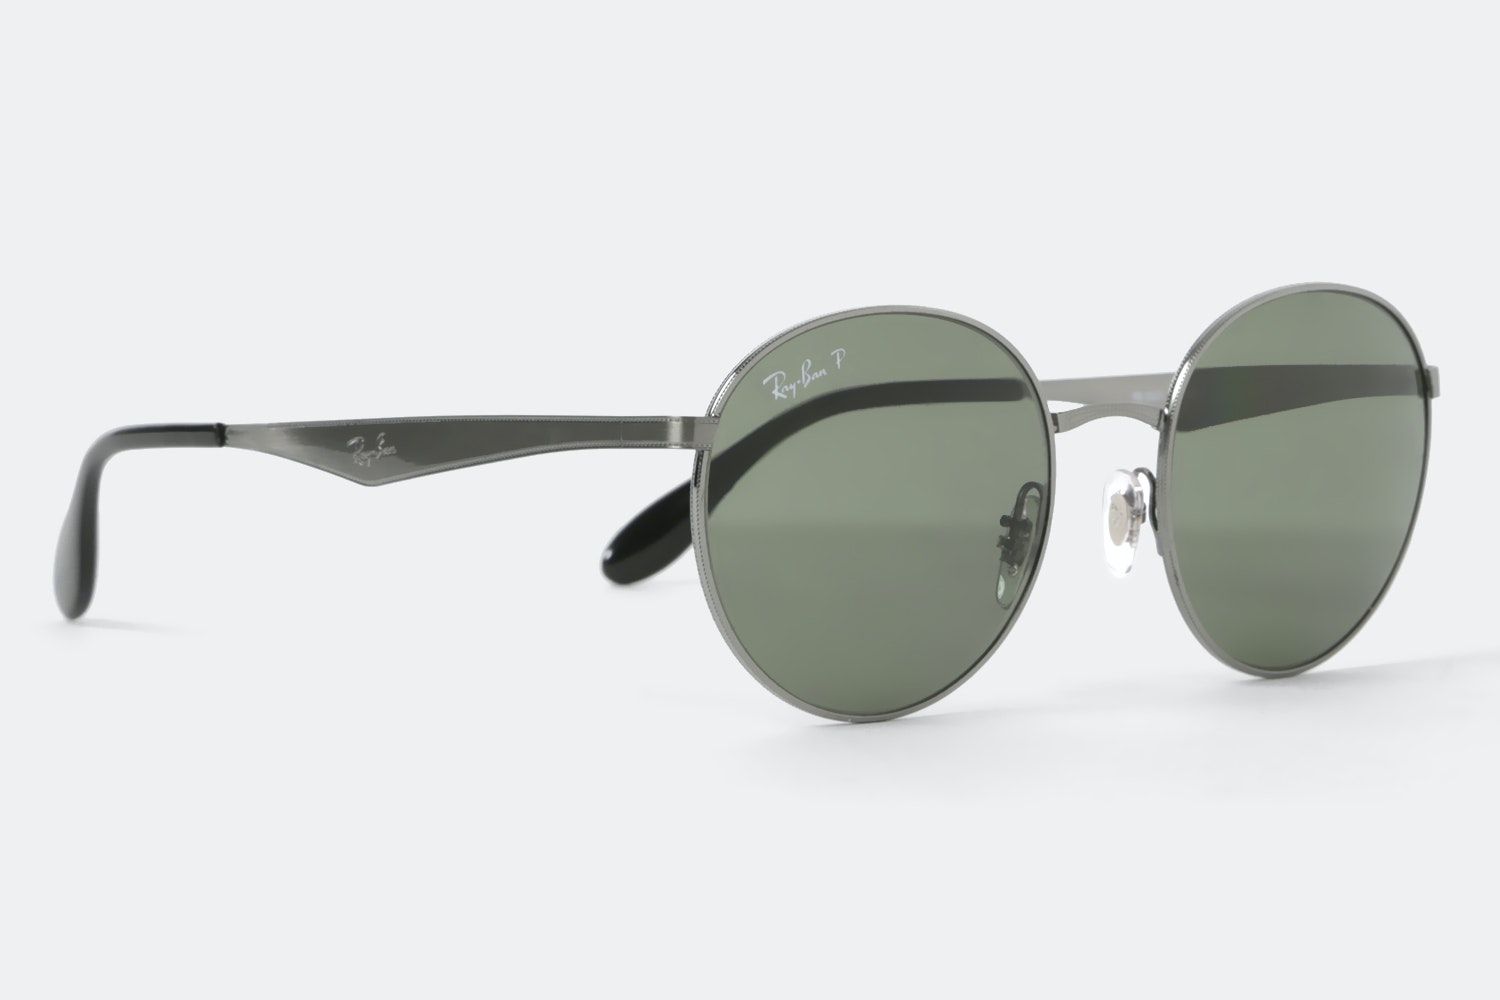 Ray-Ban RB3537 Polarized Sunglasses